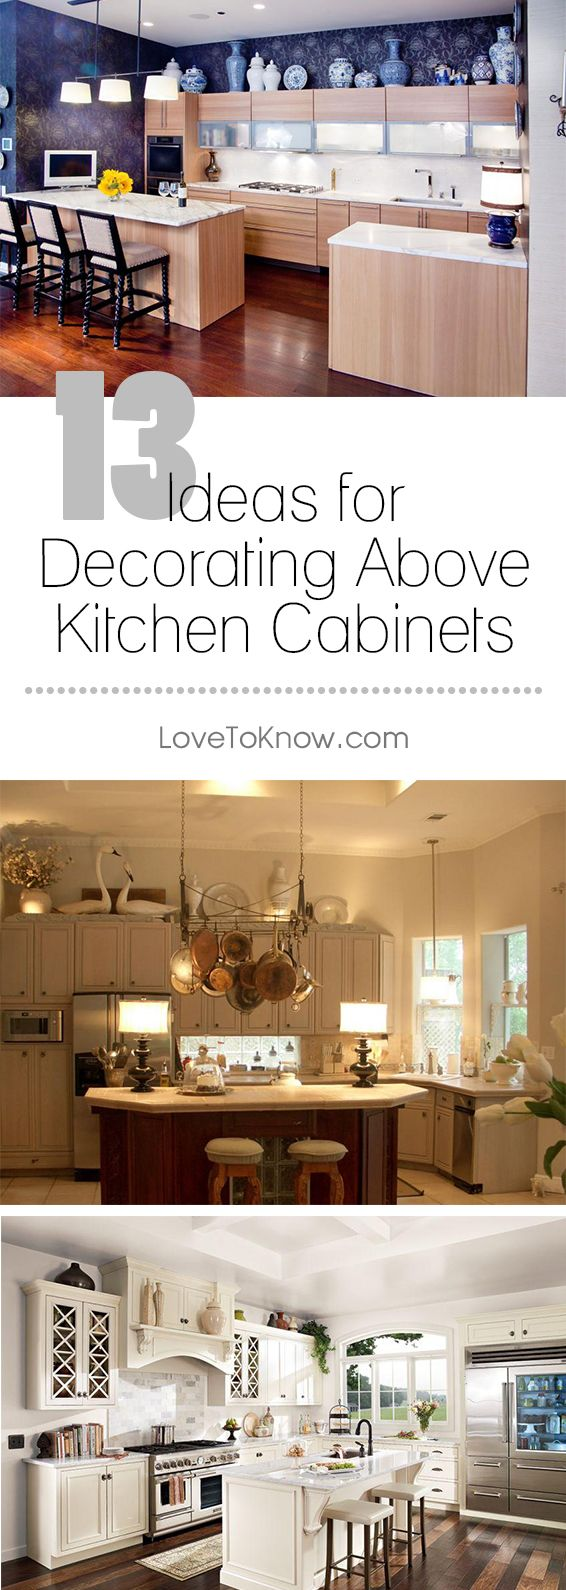 Cabinet depth cute for home interior design with kitchen cabinet depth - The Space Above Kitchen Cabinets Is An Ideal Area To Further Decorate To Give Your Kitchen Greater Design Depth